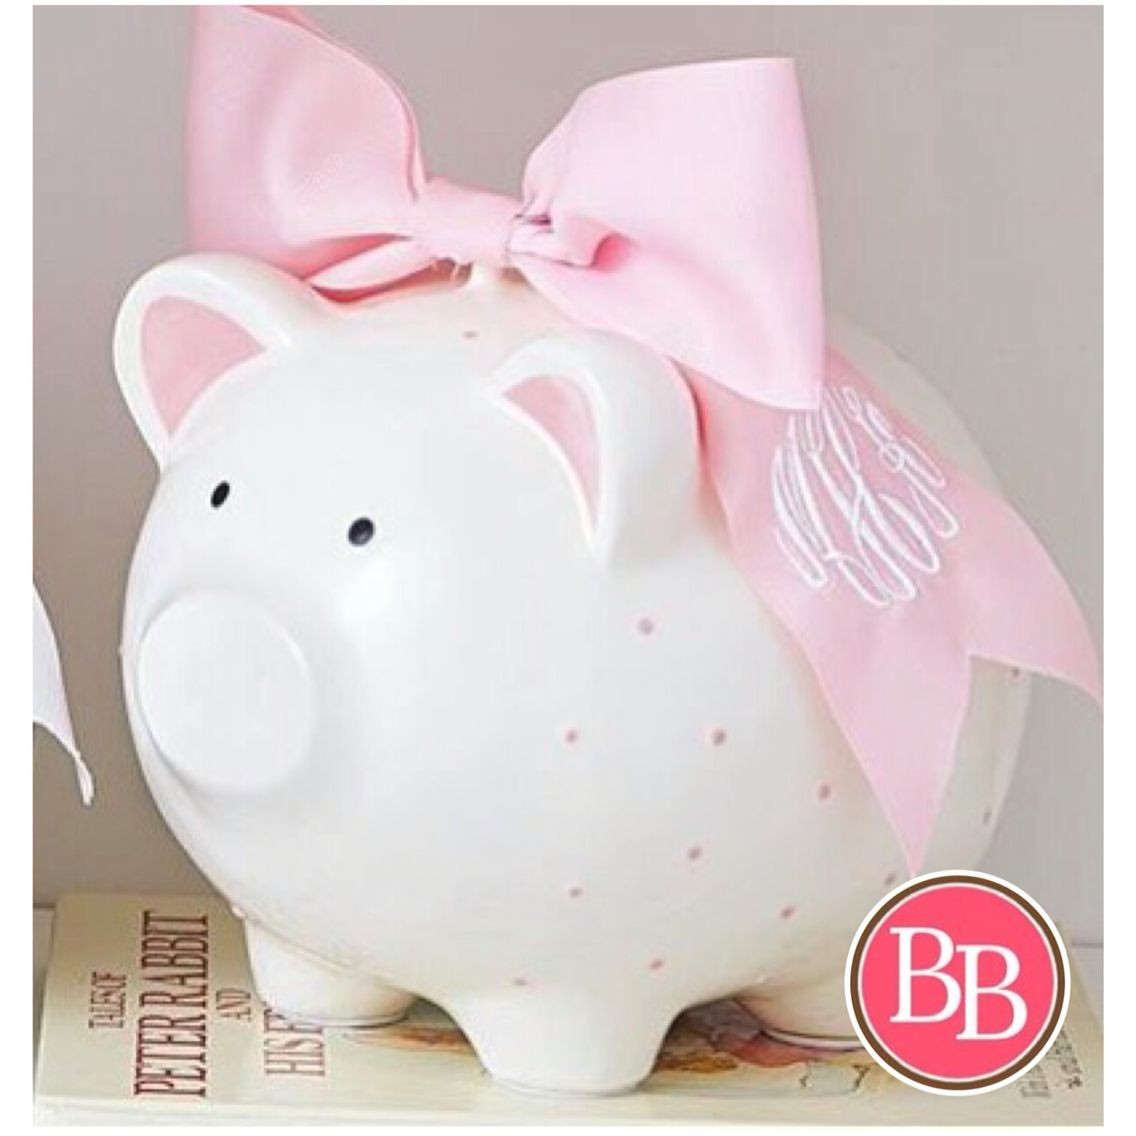 Mud pie ballerina piggy bank mud pie - Our New Pink Piggy Bank With Monogram Bow By Mudpiepiggy